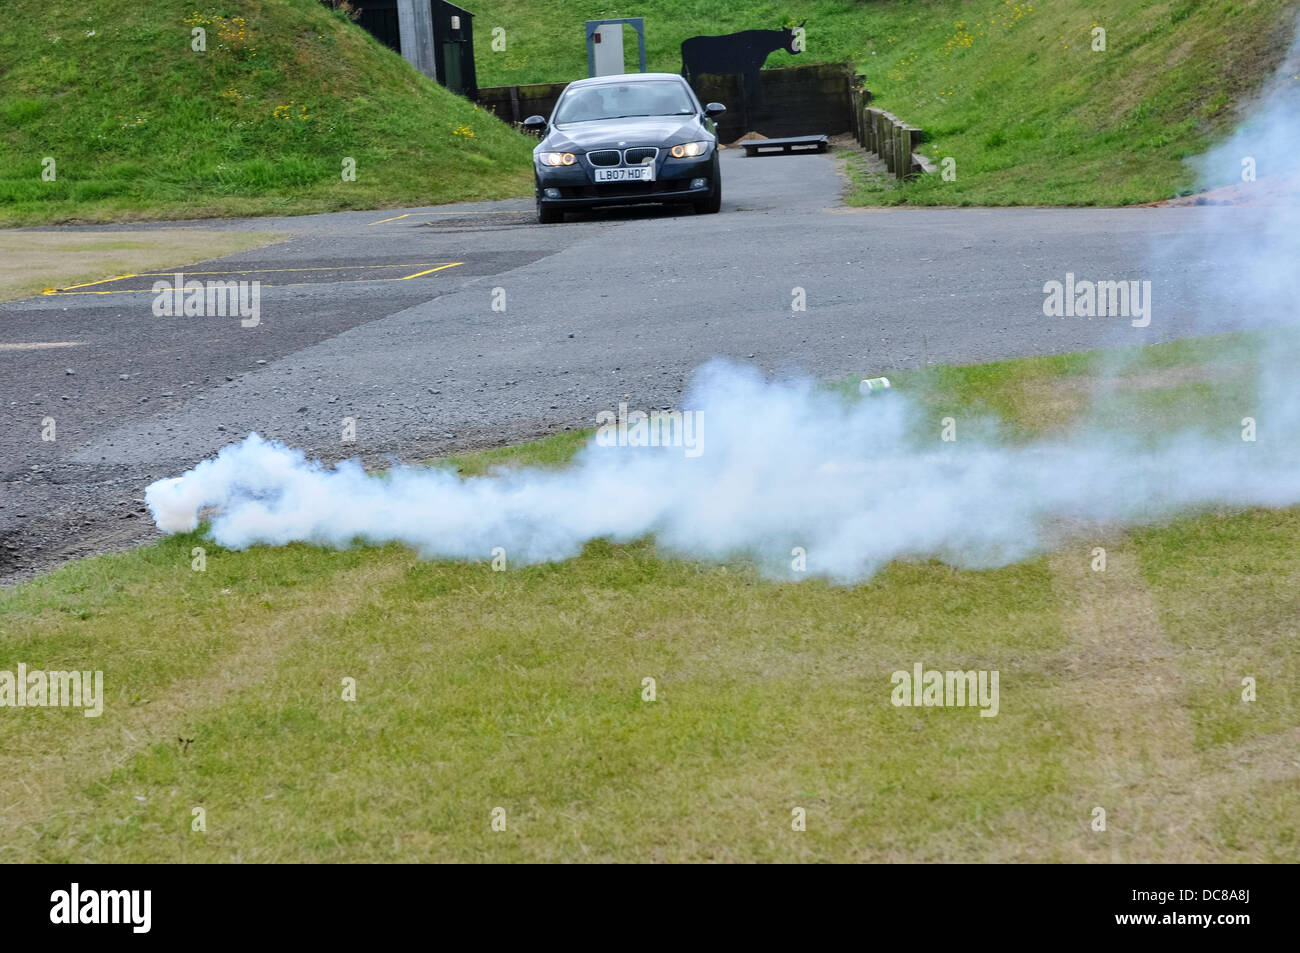 A smoke and blast grenade is thrown in front of a moving car to disorientate and distract the driver - Stock Image